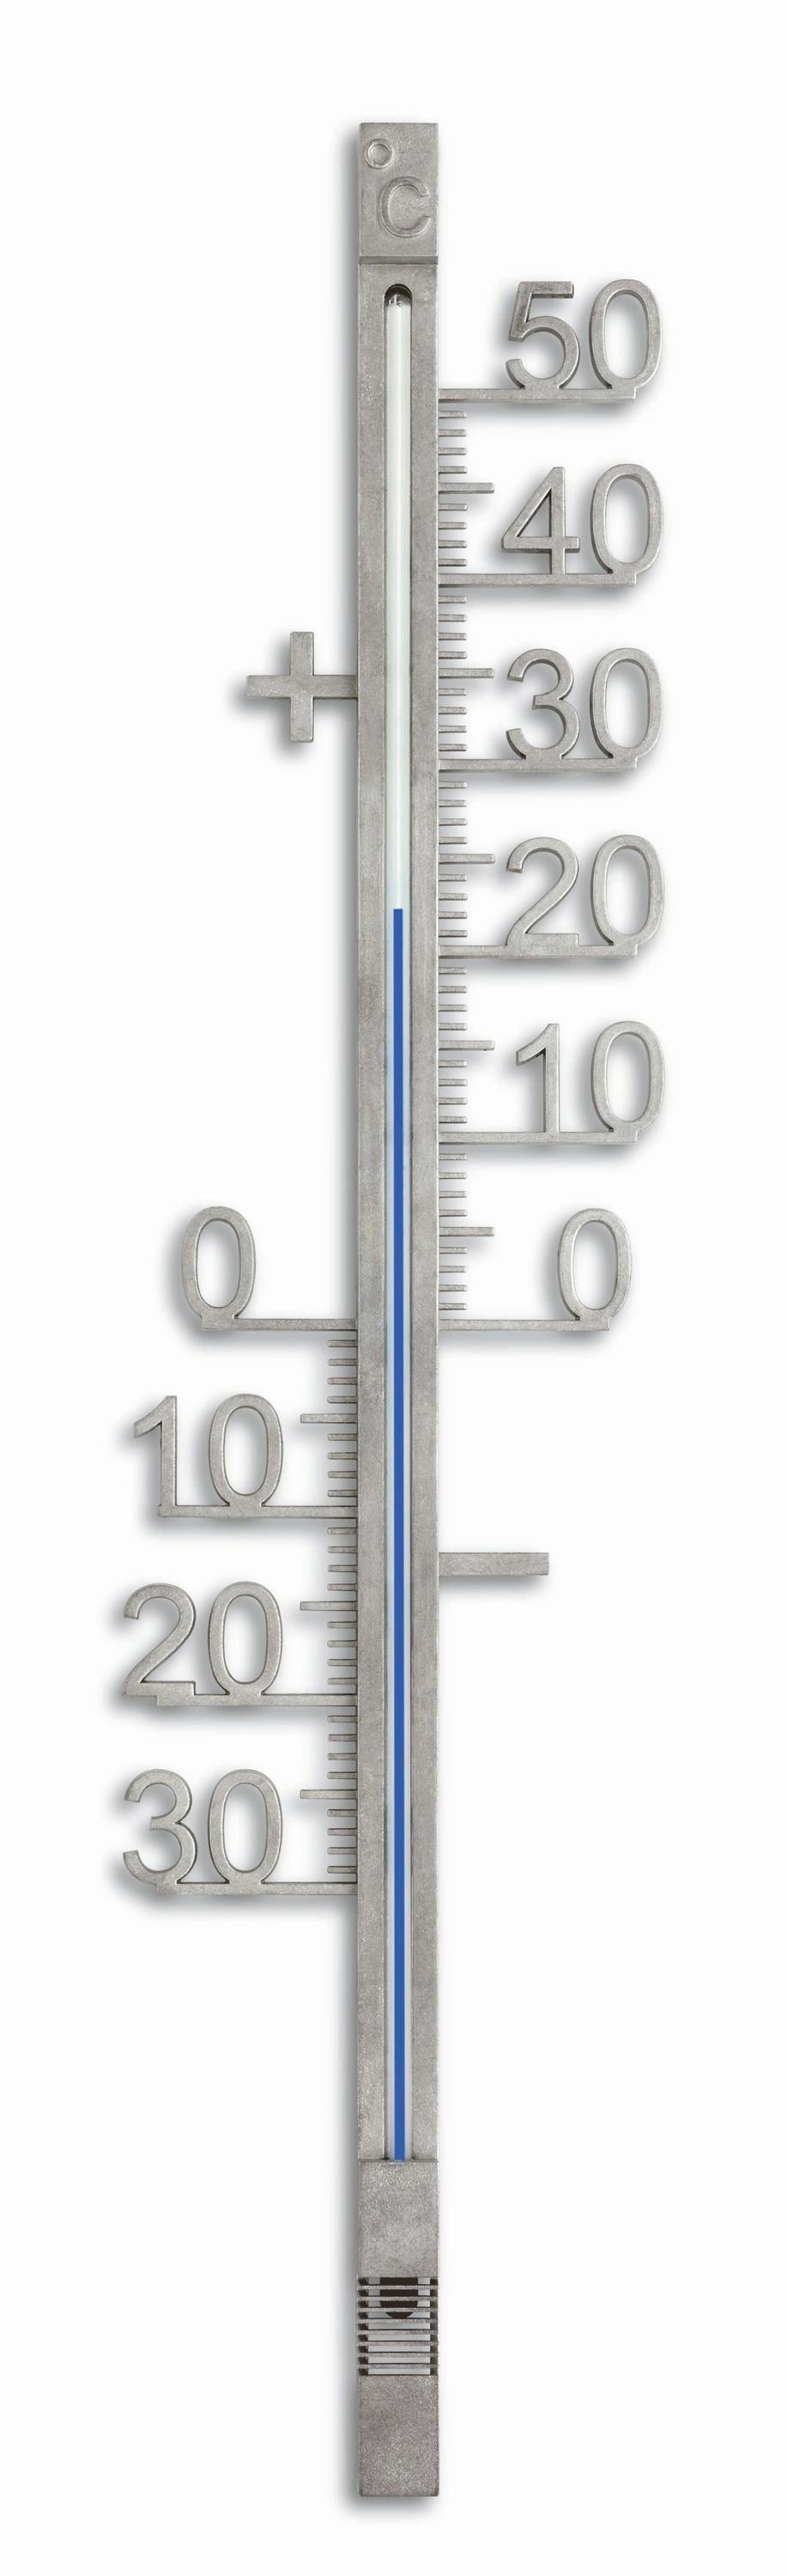 Analoges Außenthermometer aus Metall